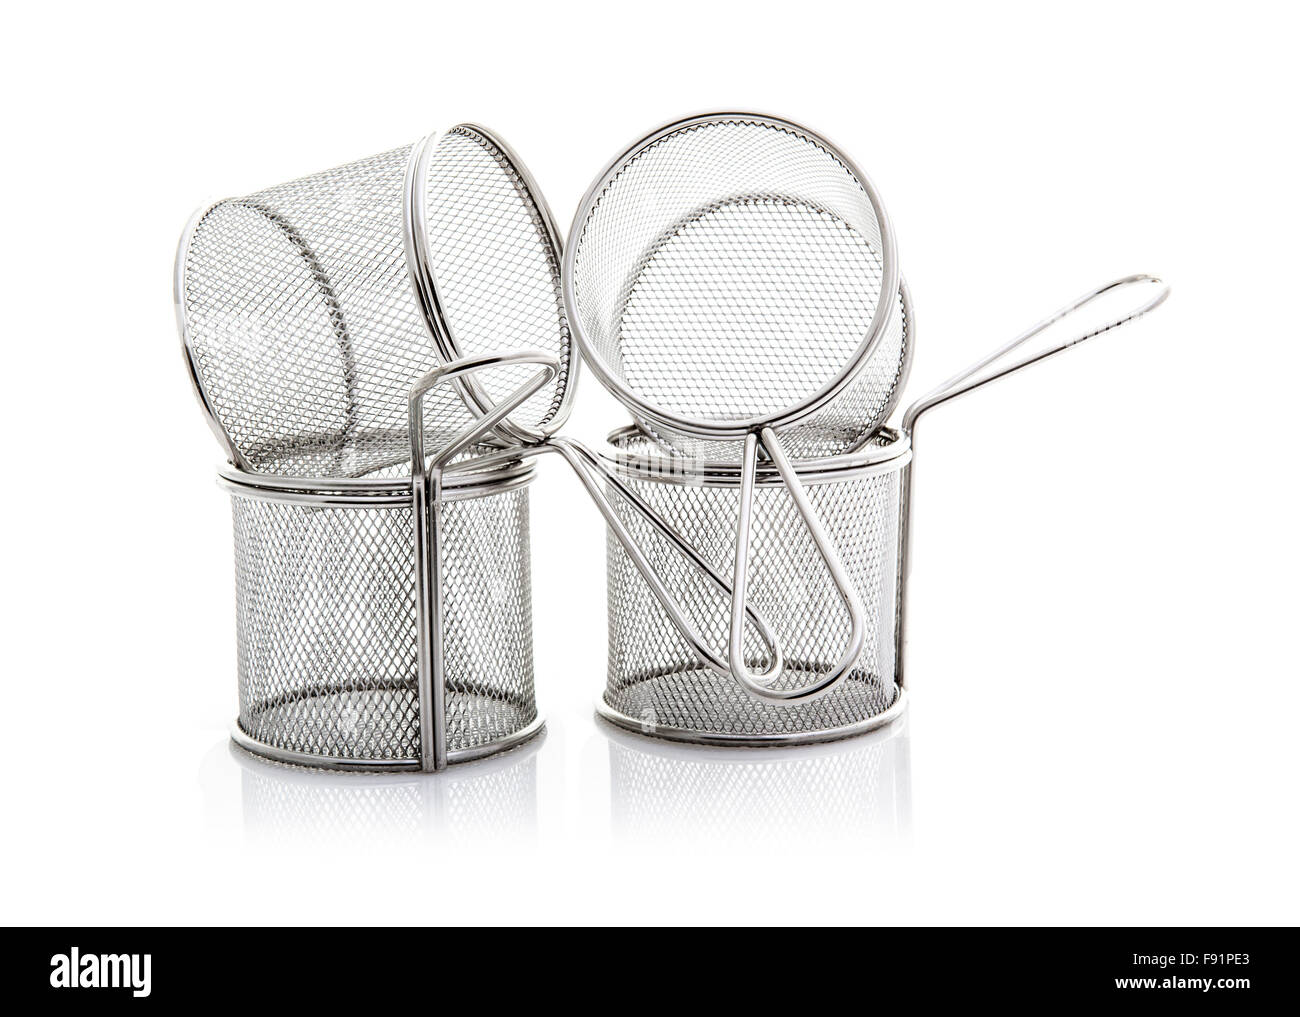 Four Empty Stainless Steel Wire Chip Baskets on a White Background ...